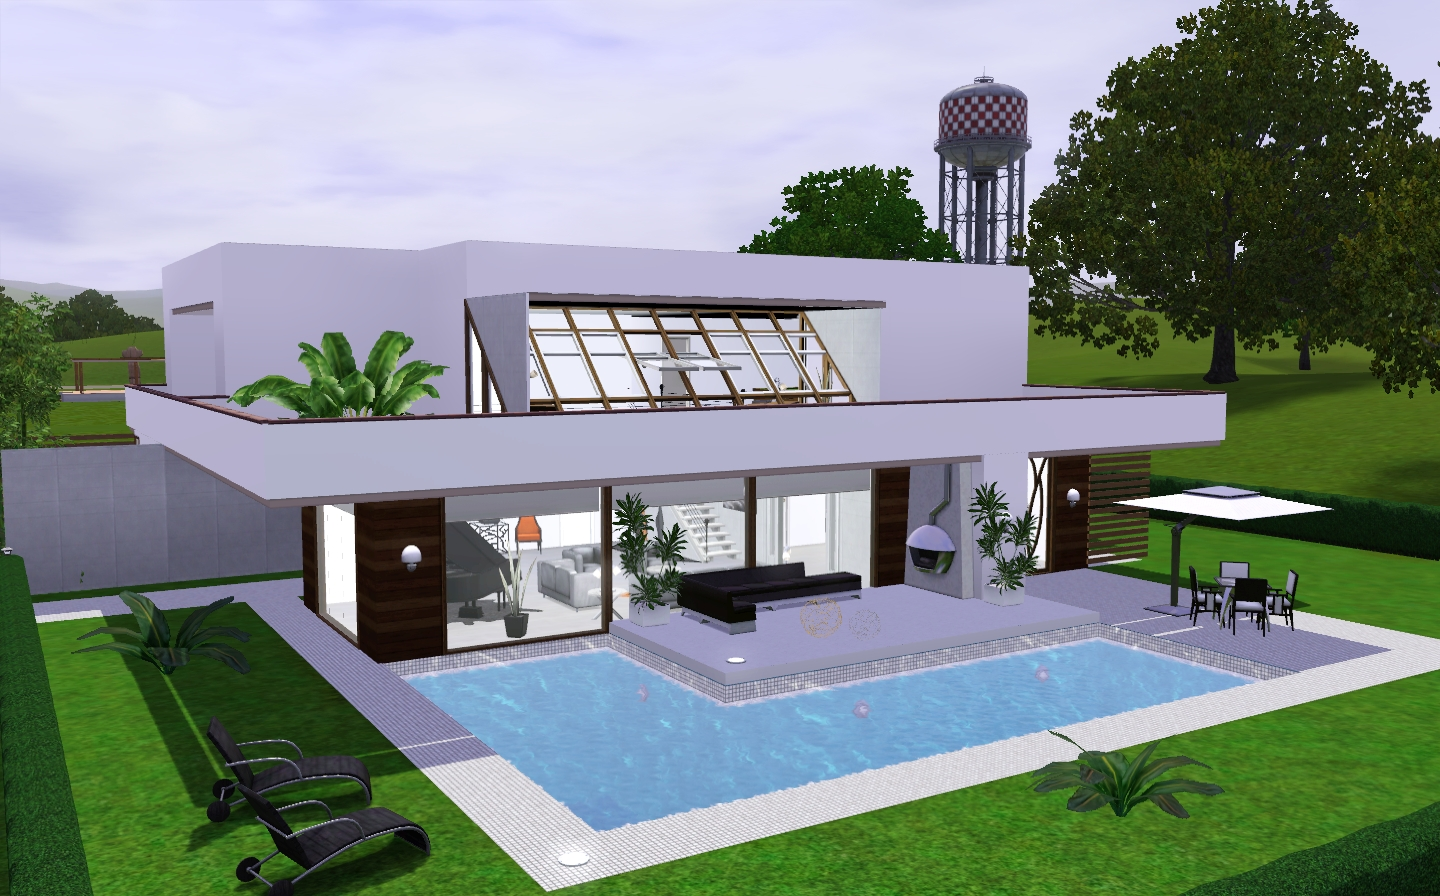 Idee sims 3 küche modern download image sims 3 modern house pc android